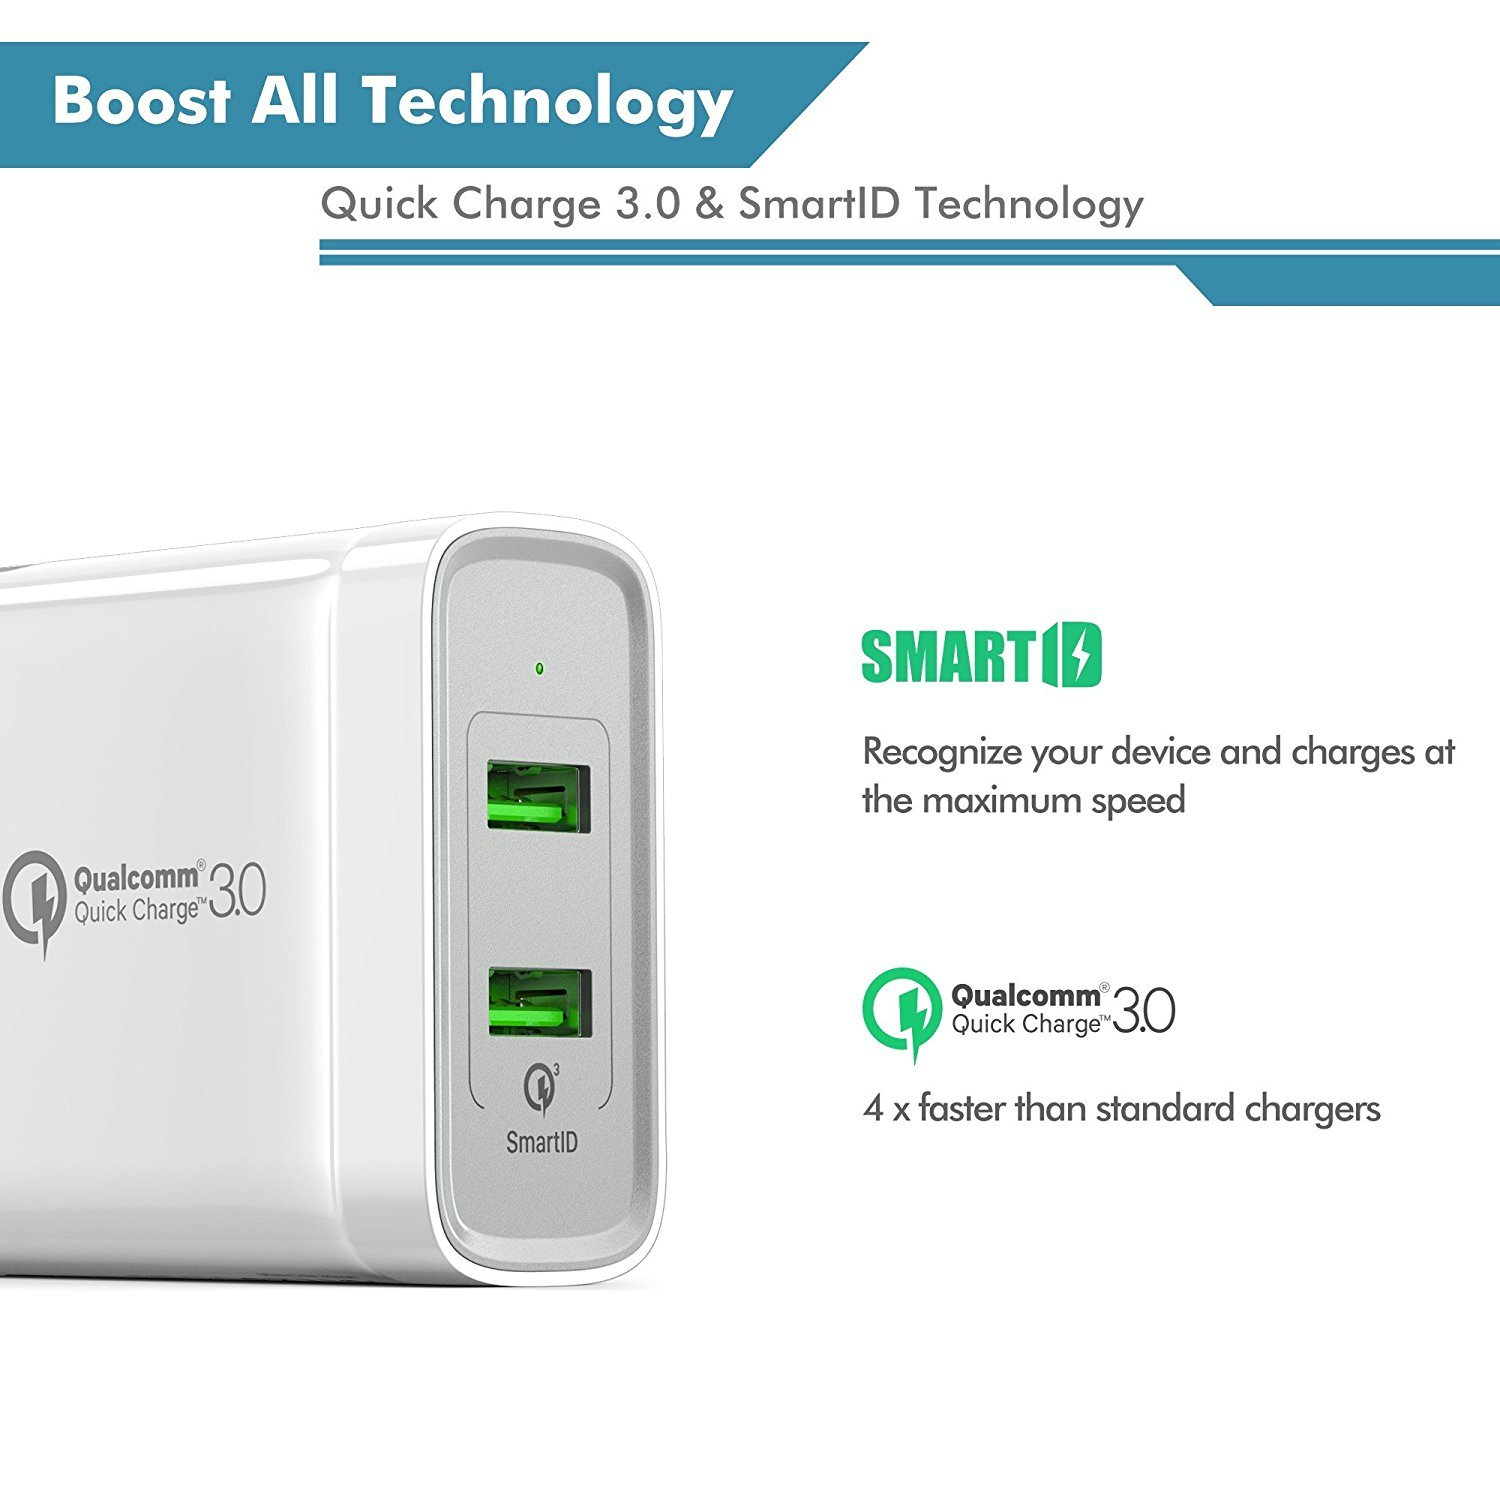 iClever BoostCube Charger Charging Compatible Image 3